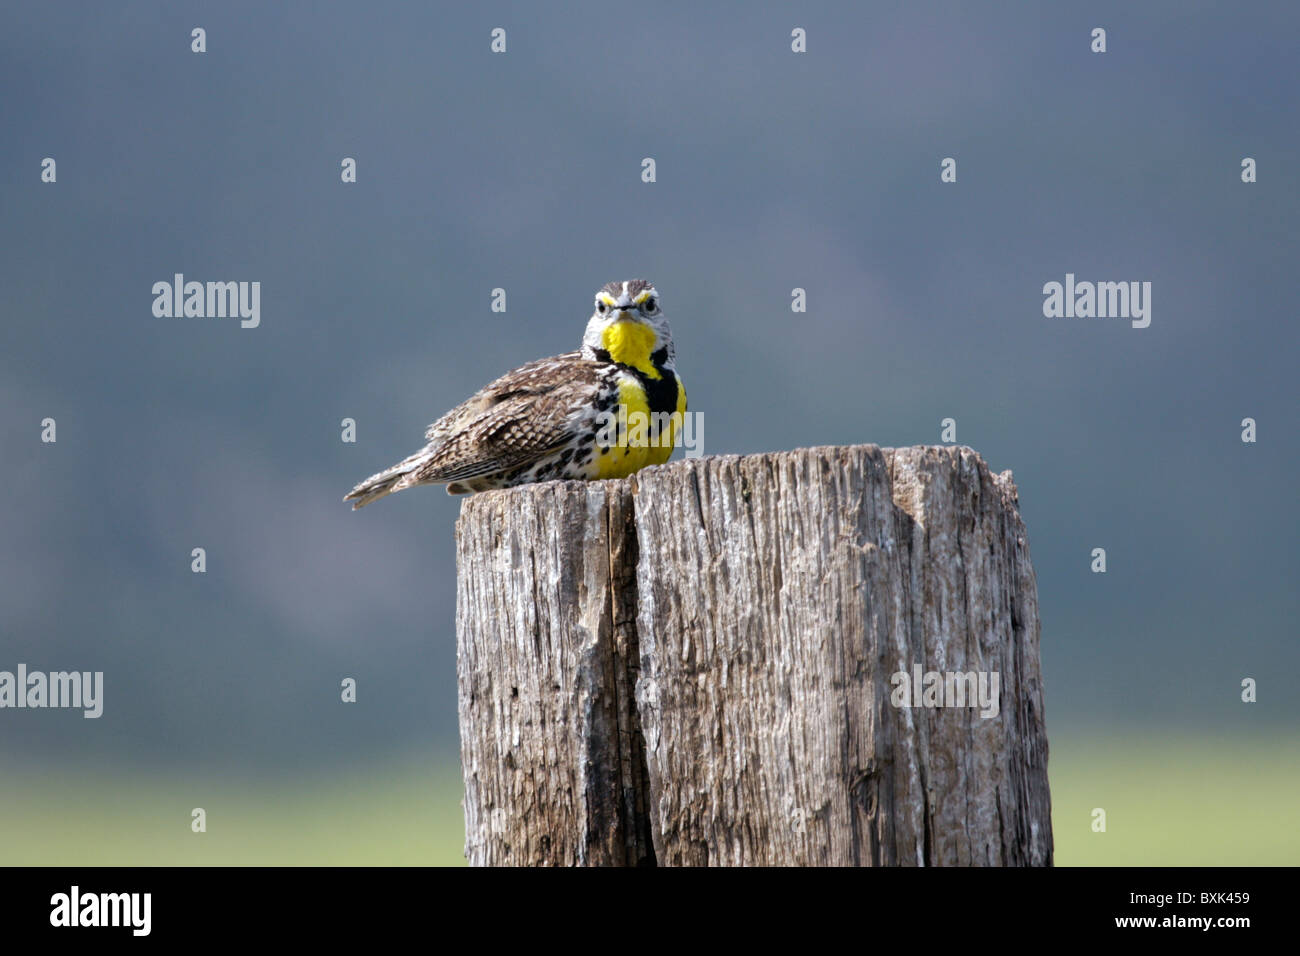 Western Meadowlark perched on a wooden fence post - Stock Image